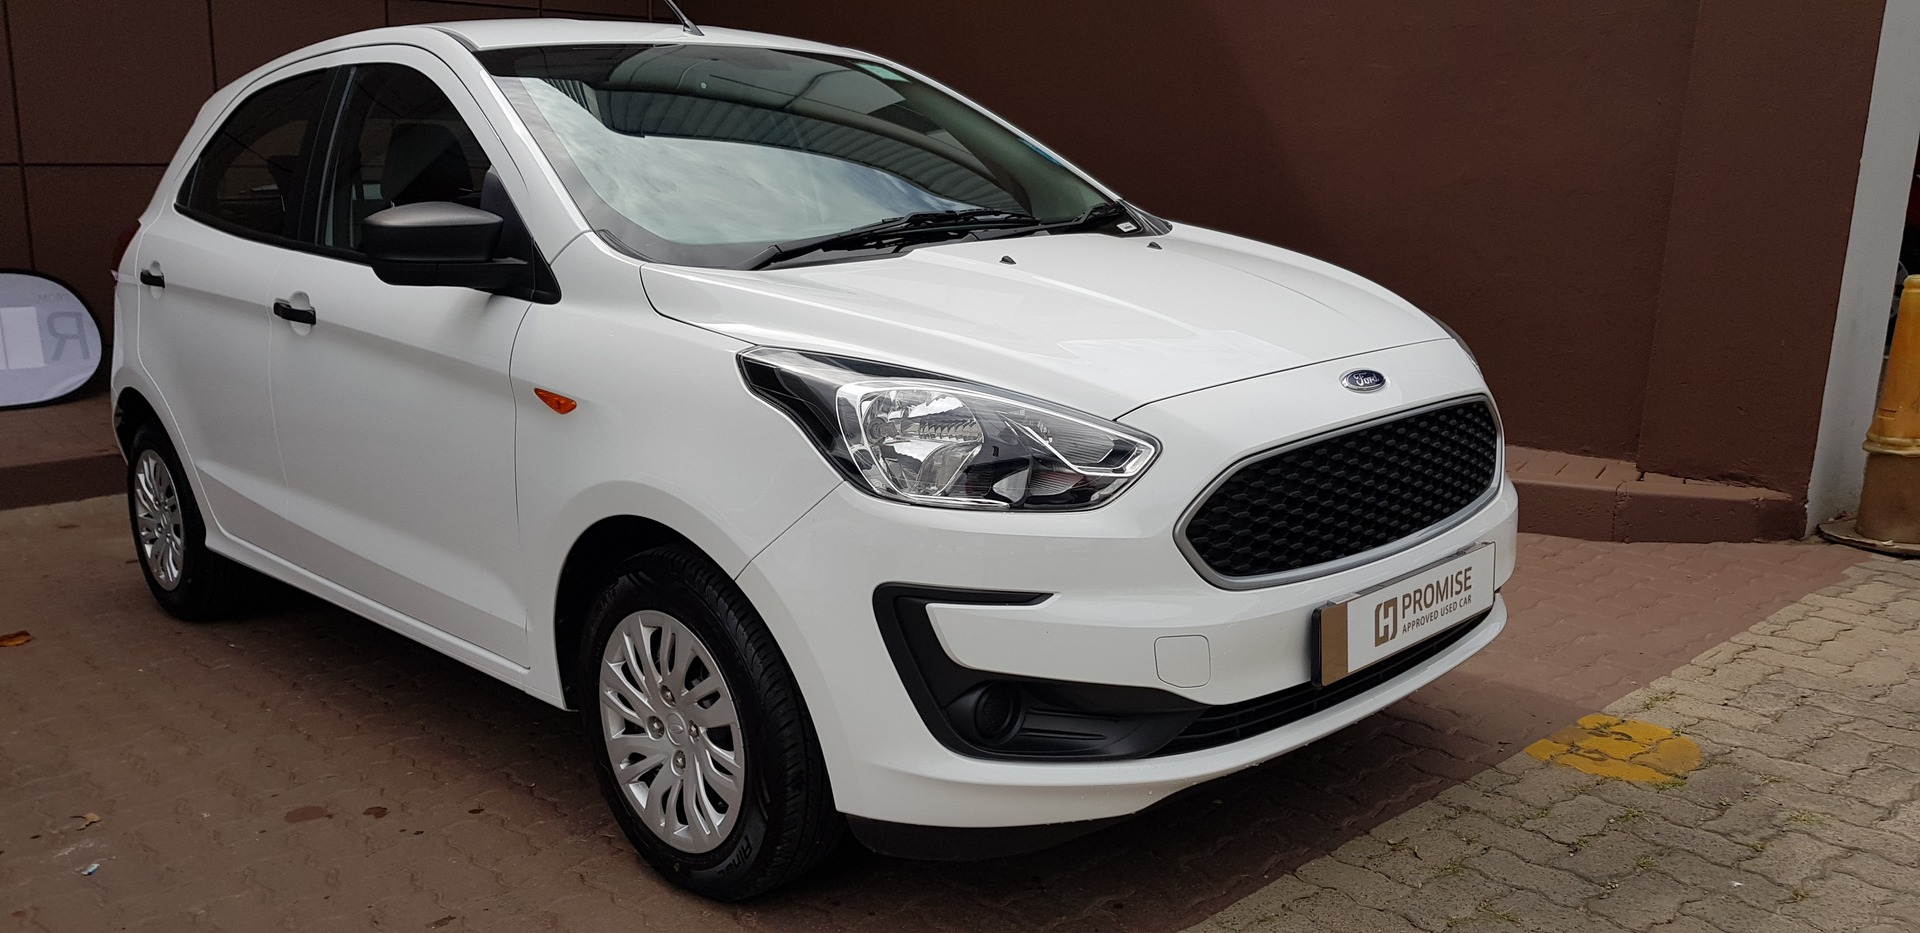 FORD 1.5Ti VCT AMBIENTE (5DR) Johannesburg 0332460